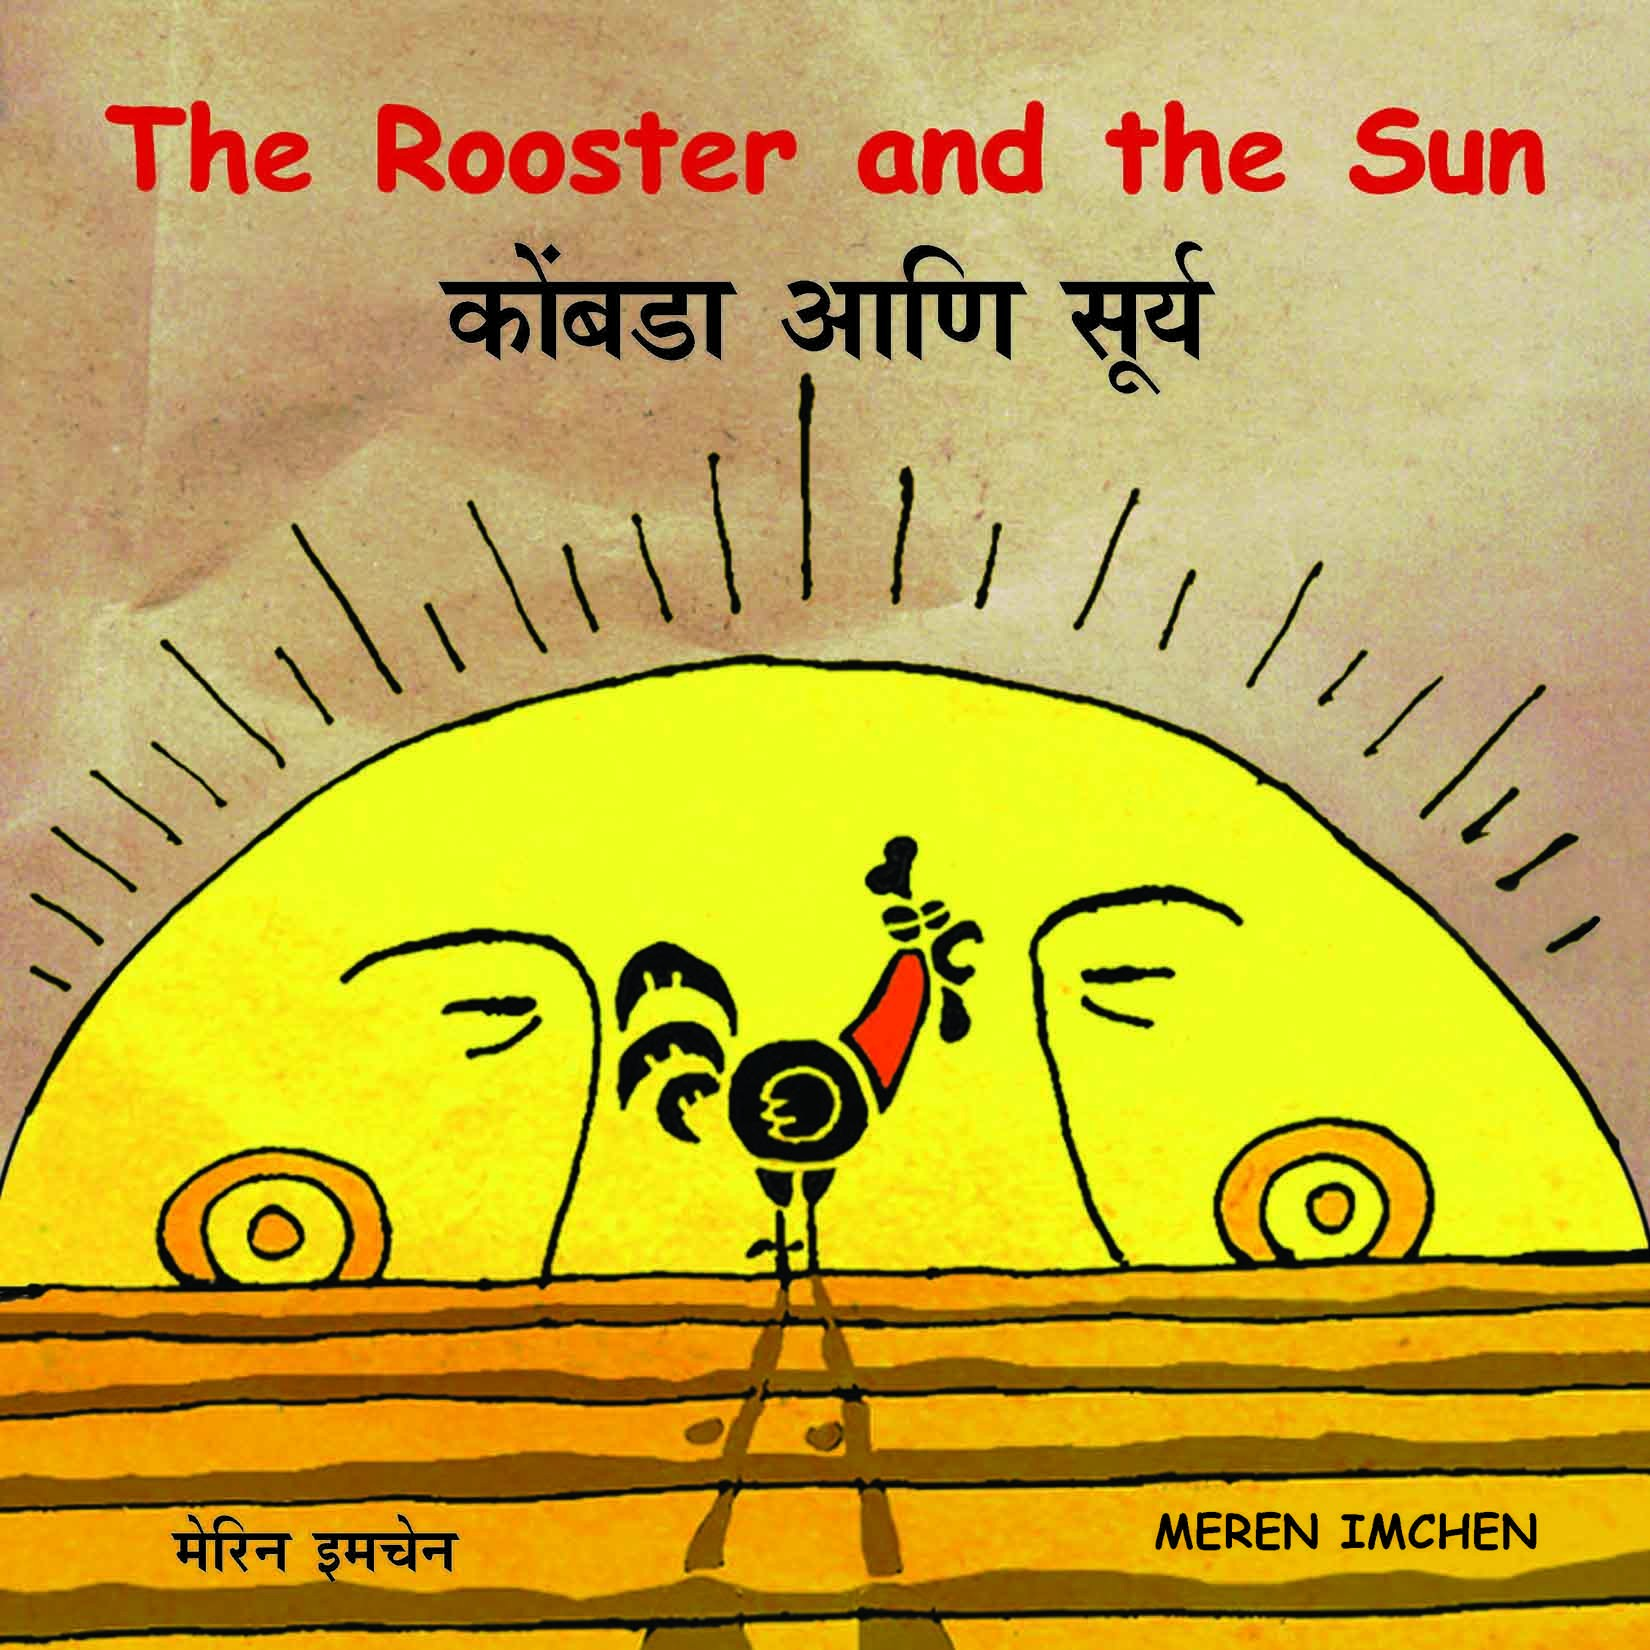 The Rooster And The Sun/Kombda Aani Surya (English-Marathi)